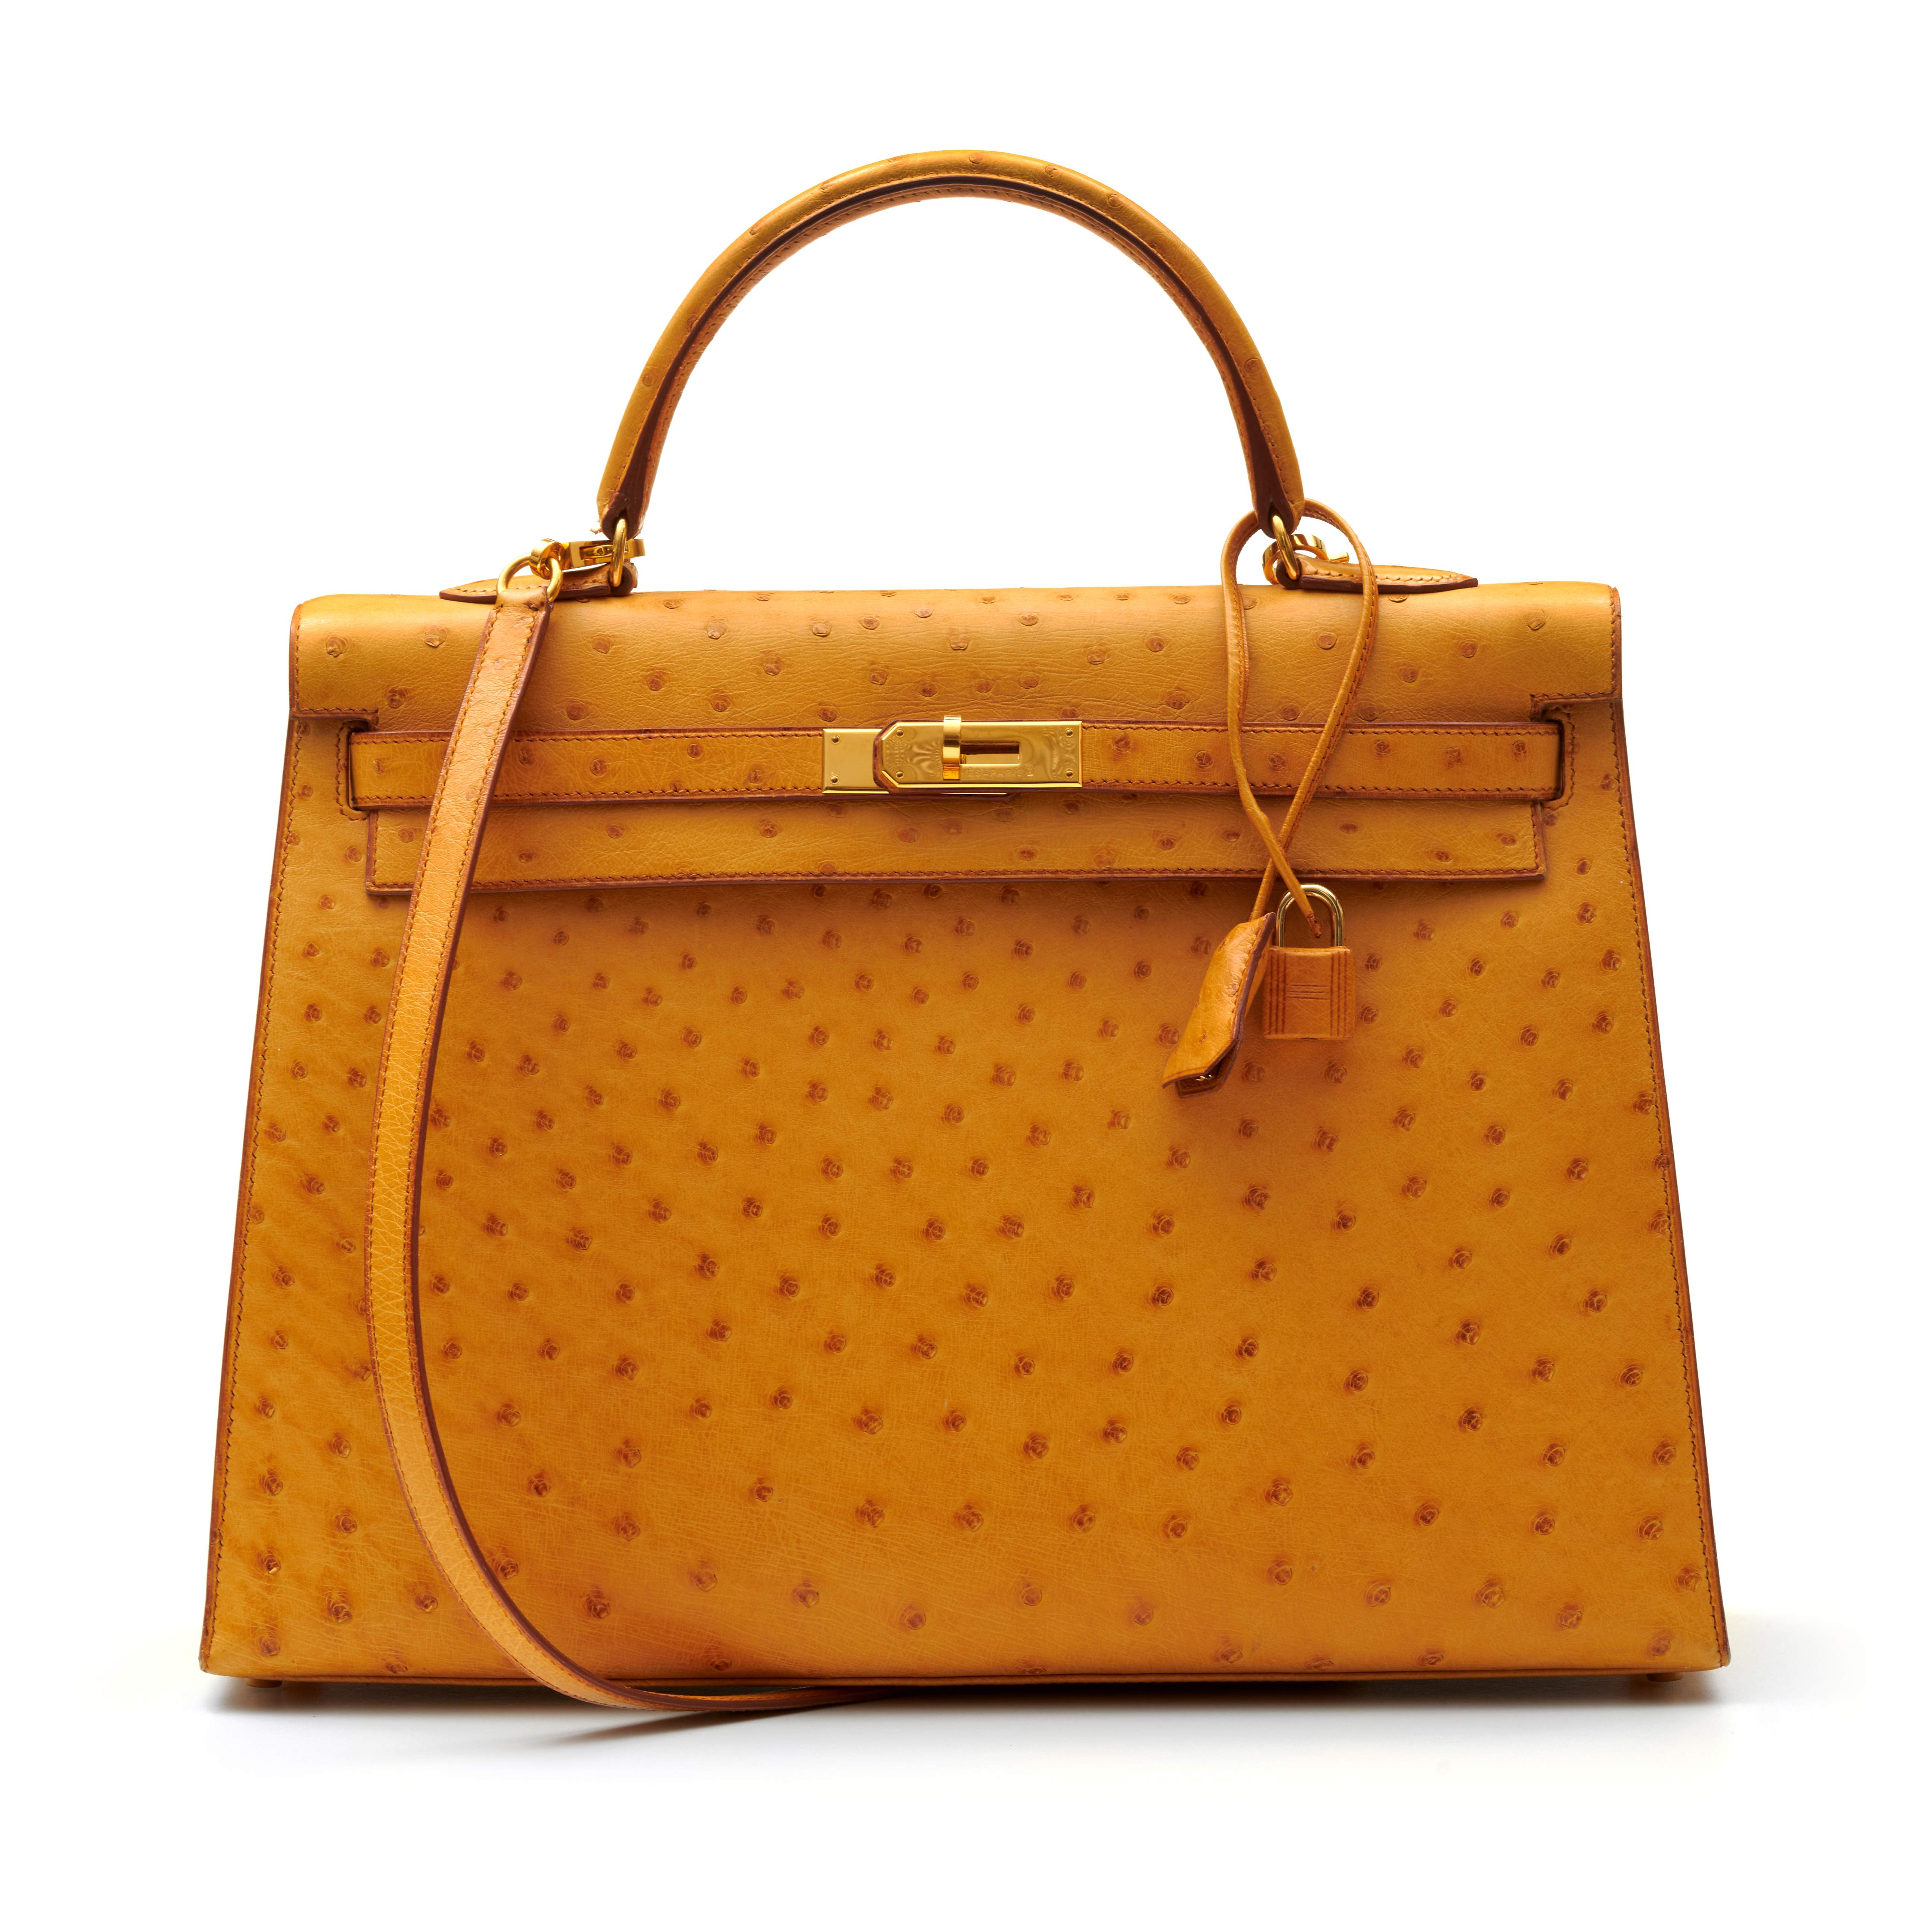 View full screen - View 1 of Lot 315. Saffron Sellier Kelly 35 in Ostrich Leather with Gold Hardware, 1996.